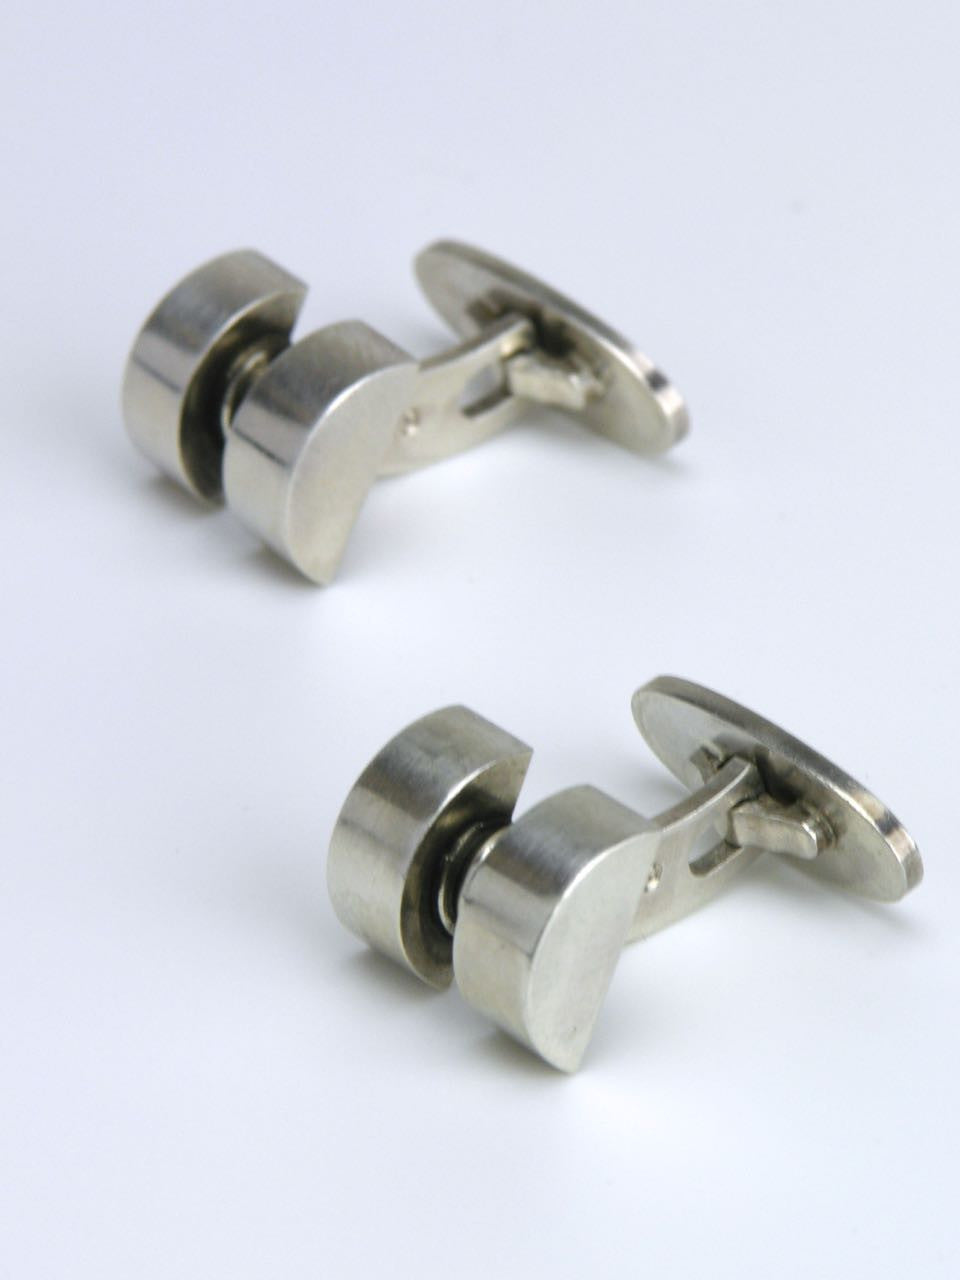 Georg Jensen silver segmented cufflinks - design 67